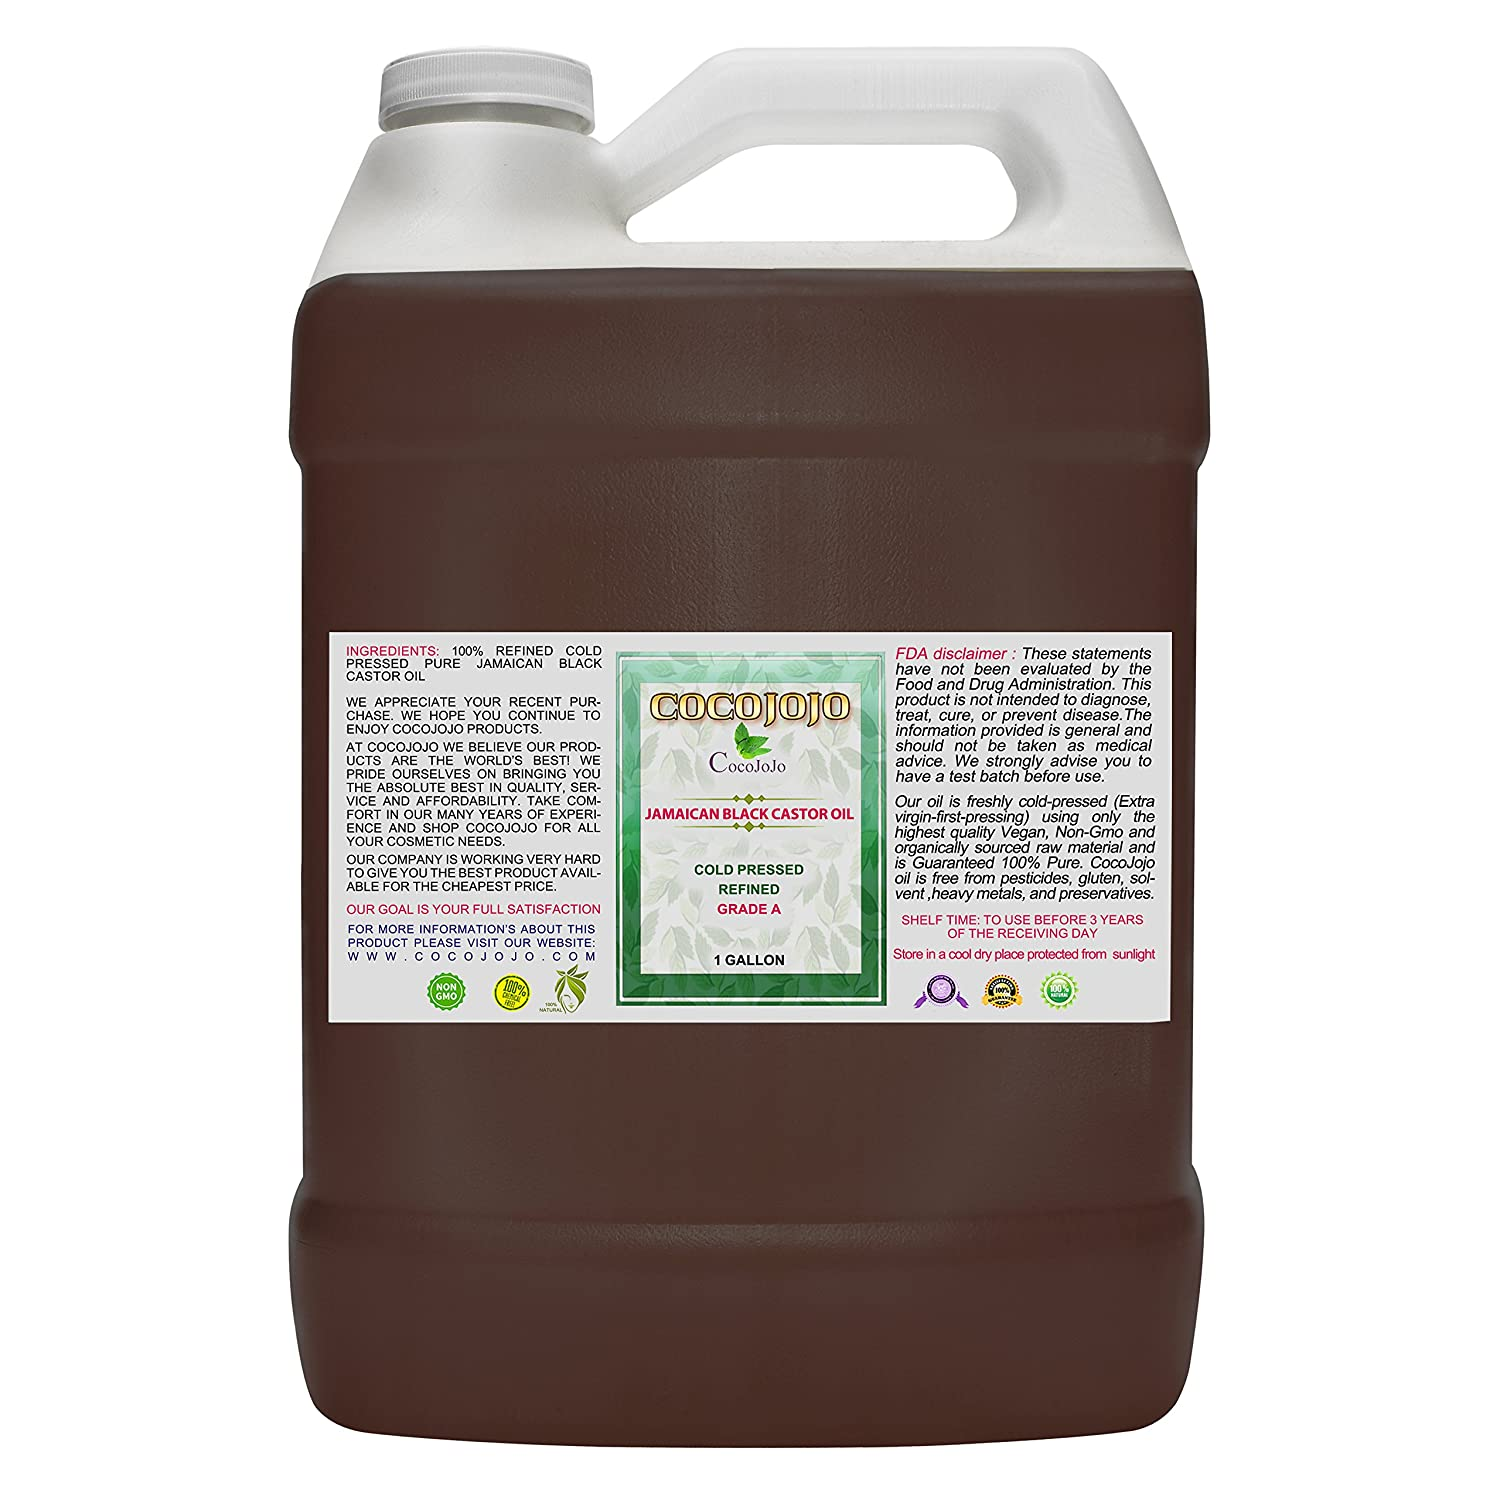 Cocojojo Cold Pressed Organic Jamaican Black Castor Oil, 36 oz